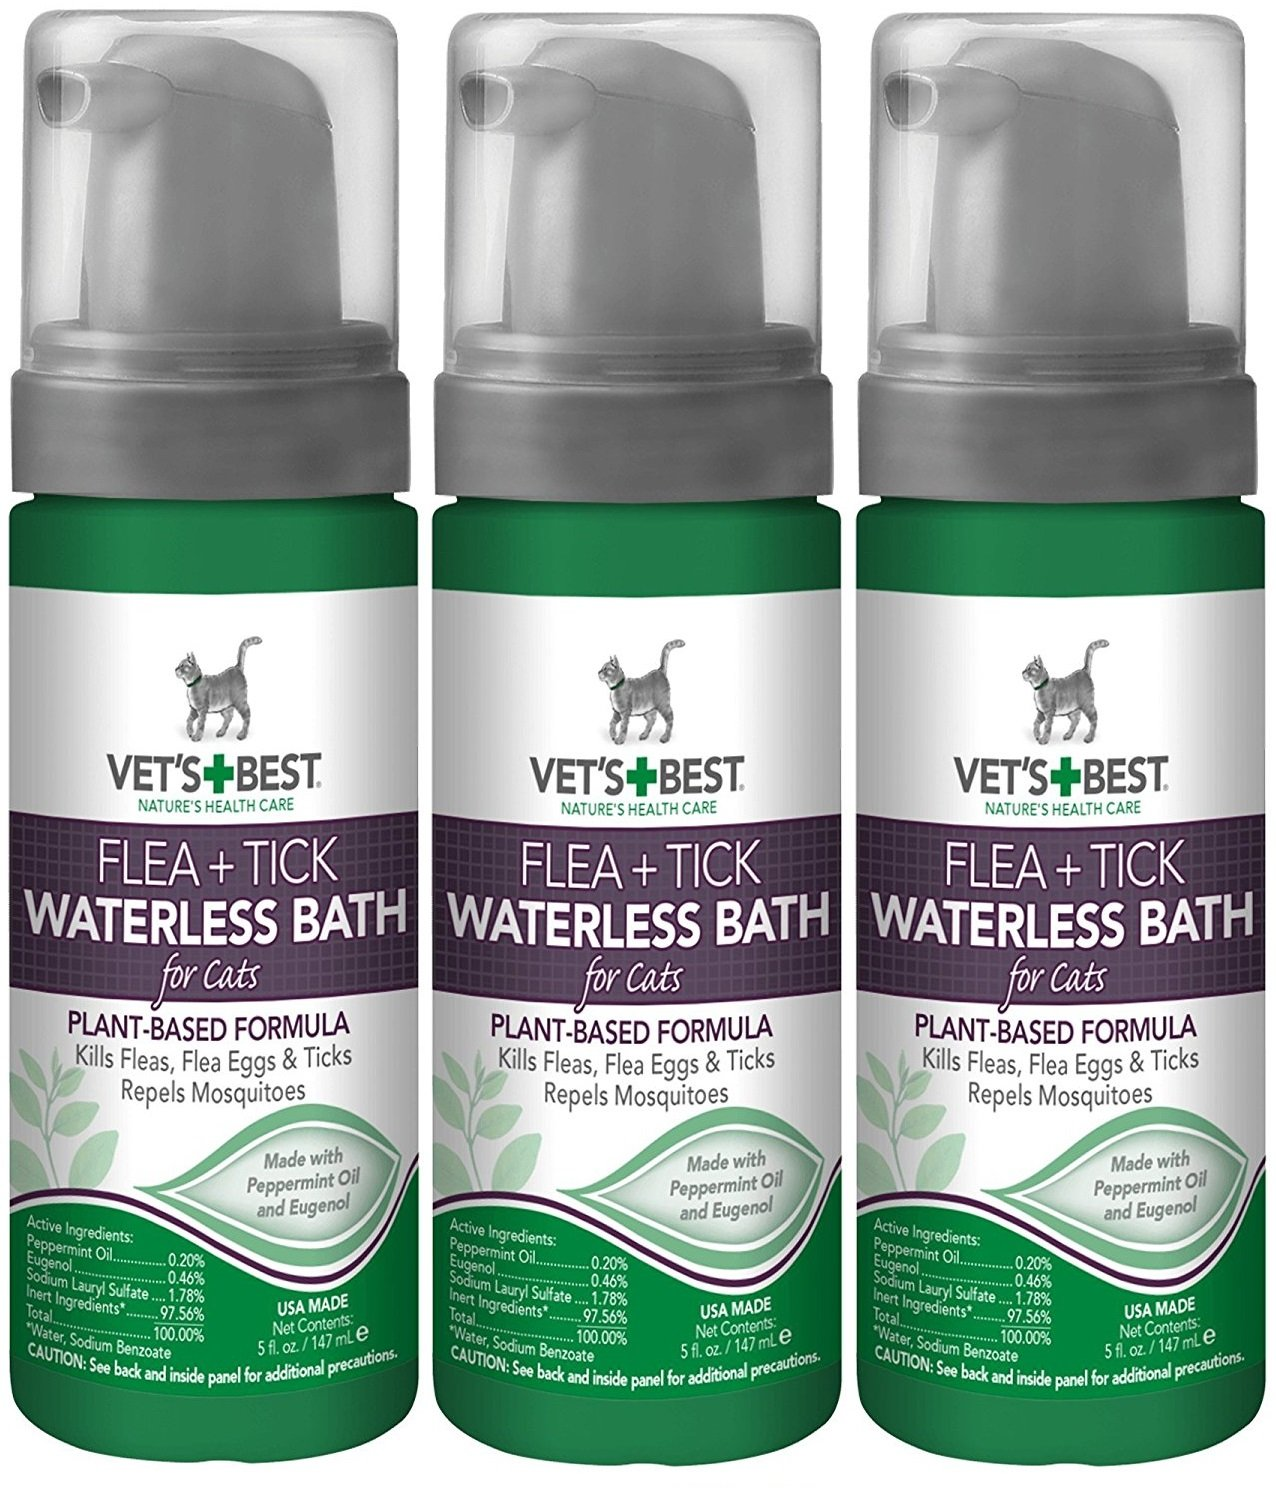 (3 Pack) Vet's Best Natural Flea and Tick Waterless Bath Foam for Cats, 5 oz by Vet's Best